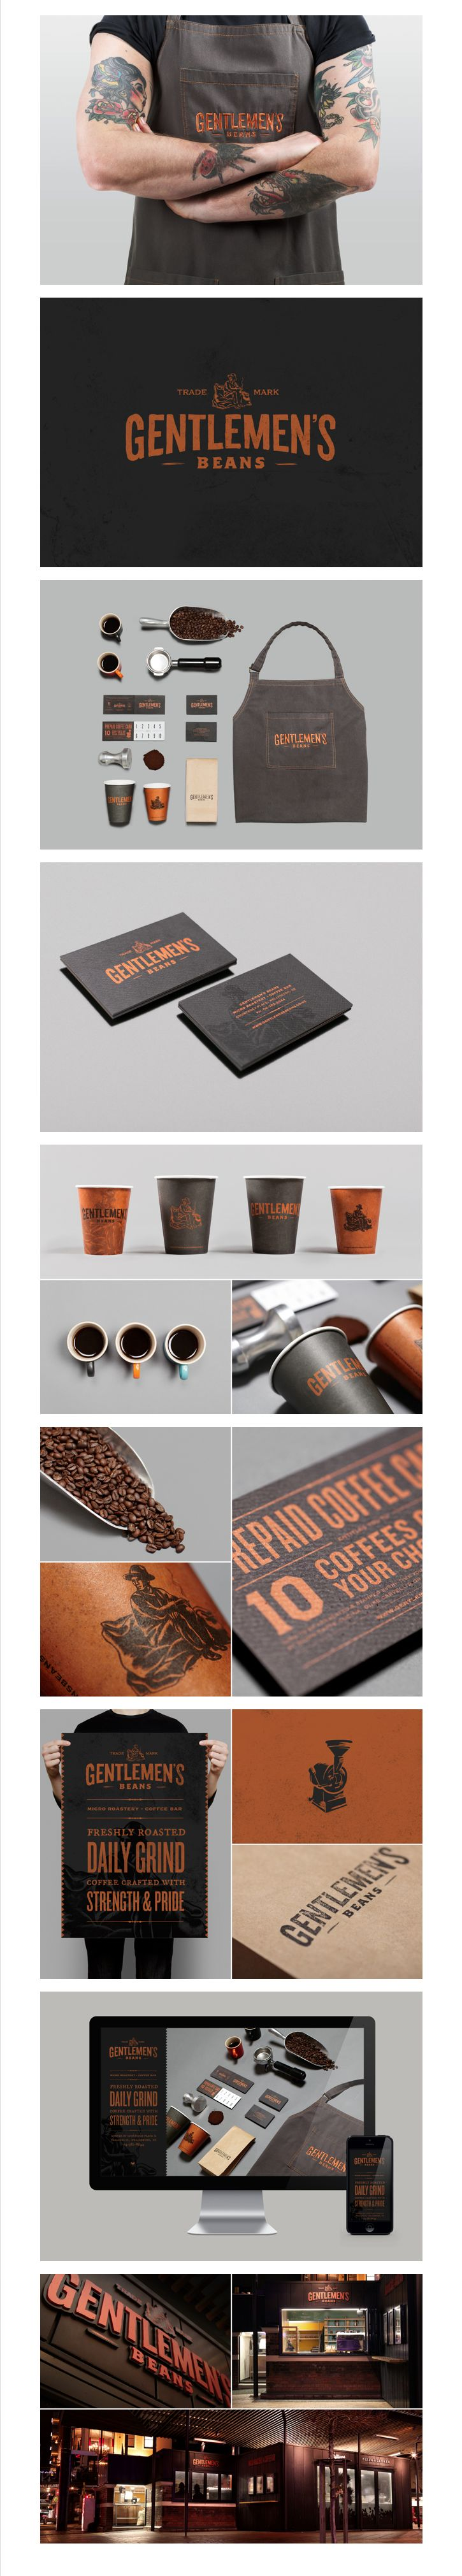 71 best Branding images on Pinterest